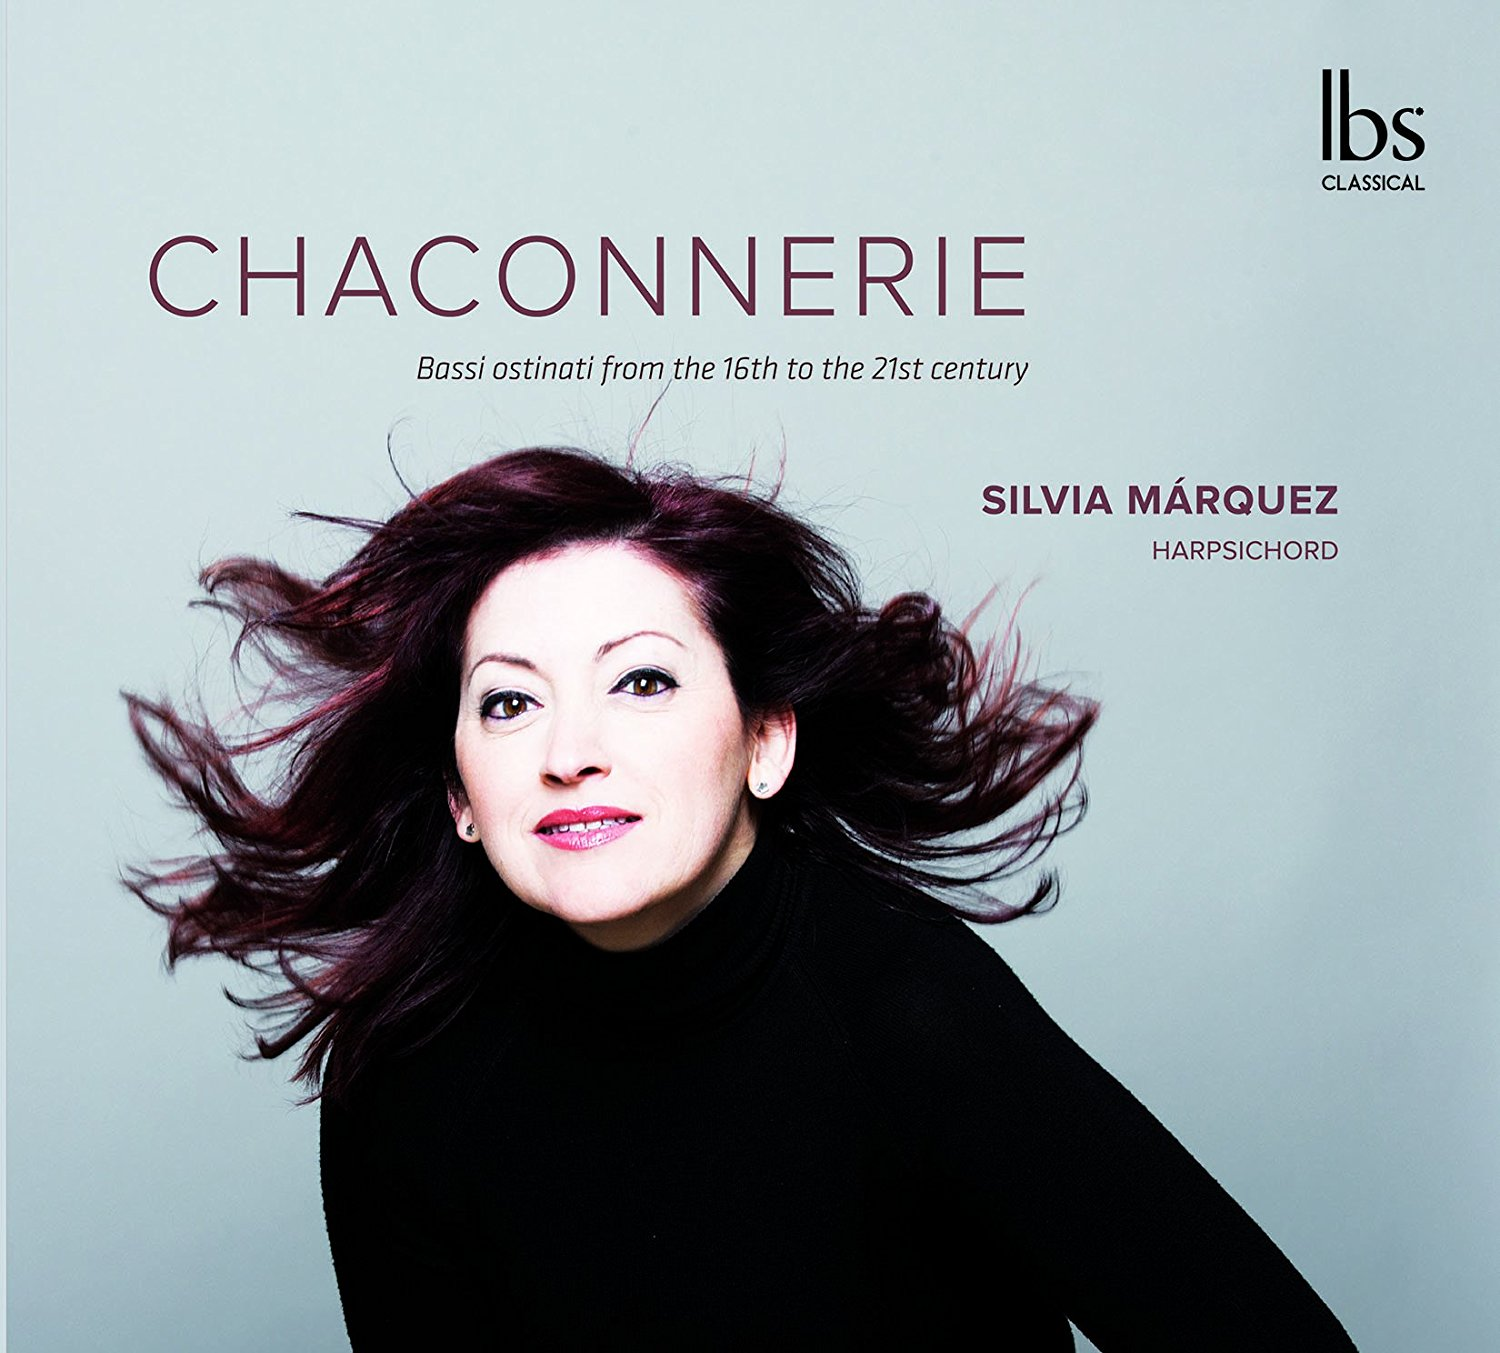 Chaconnerie, Silvia Marquez, Harpsichord - Click Image to Close